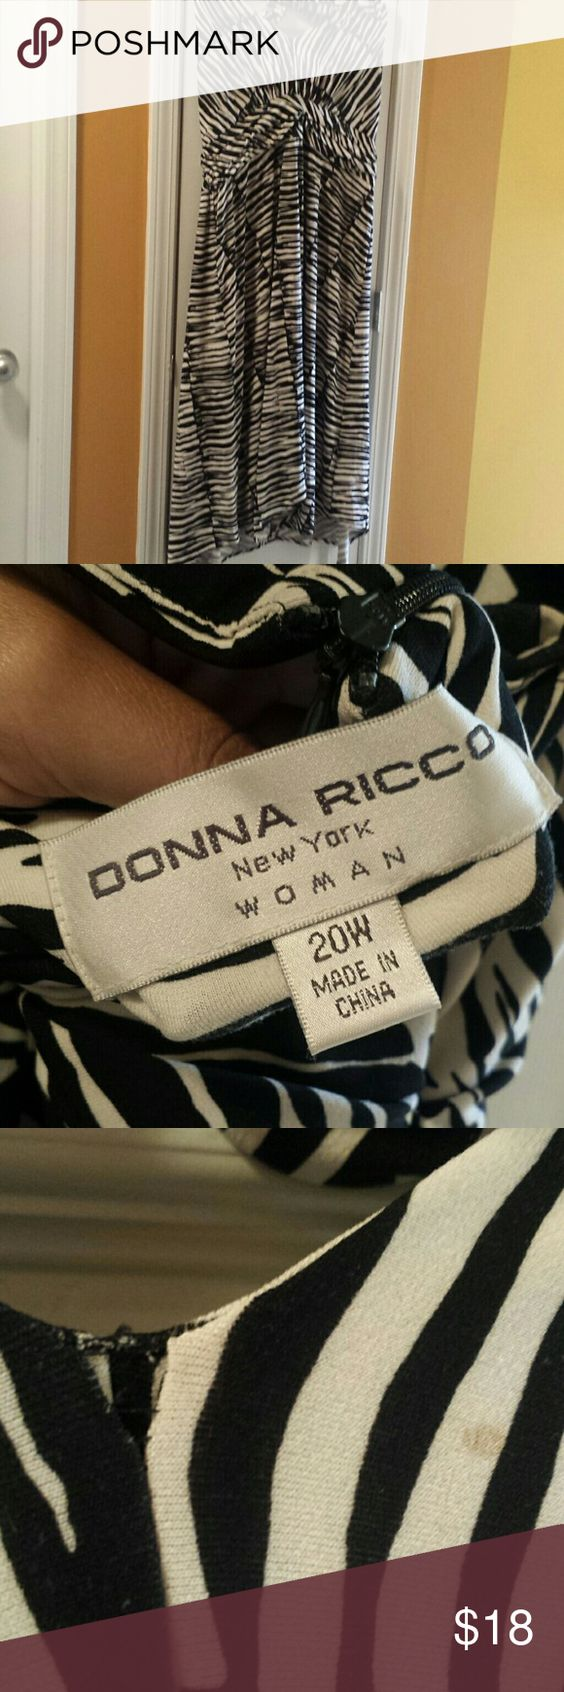 Size 20W Donna Ricco halter dress Black and white halter dress. Has a small stain and slight tear as indicated in photo. Price reflects such. Donna Ricco Dresses